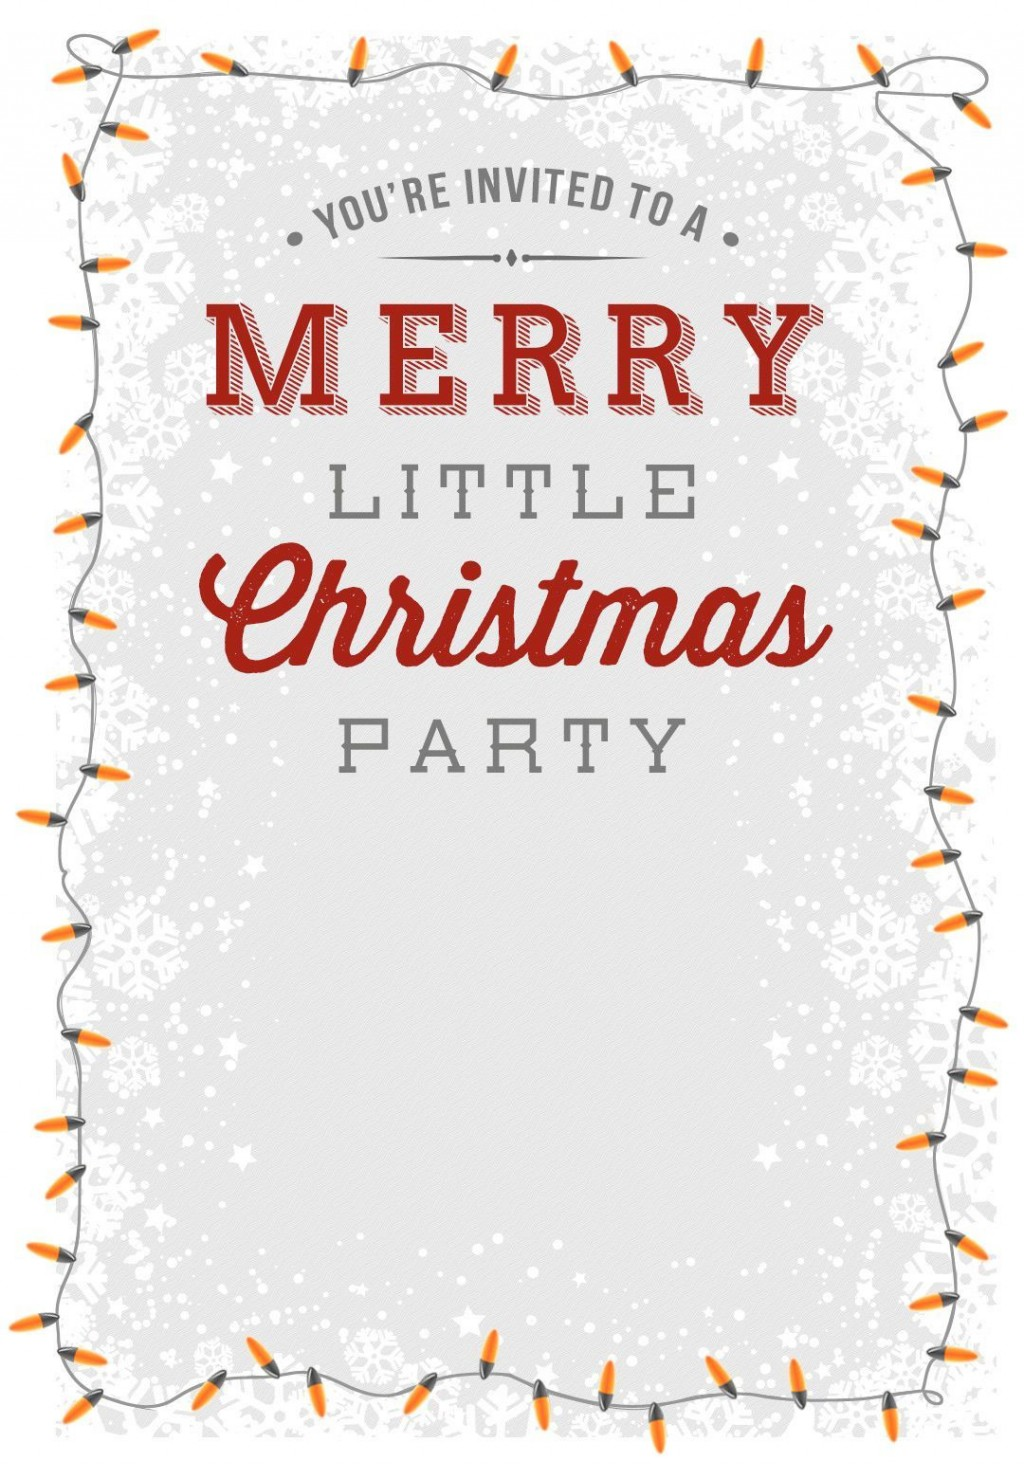 006 Fascinating Christma Party Invitation Template Idea  Funny Free Download Word CardLarge